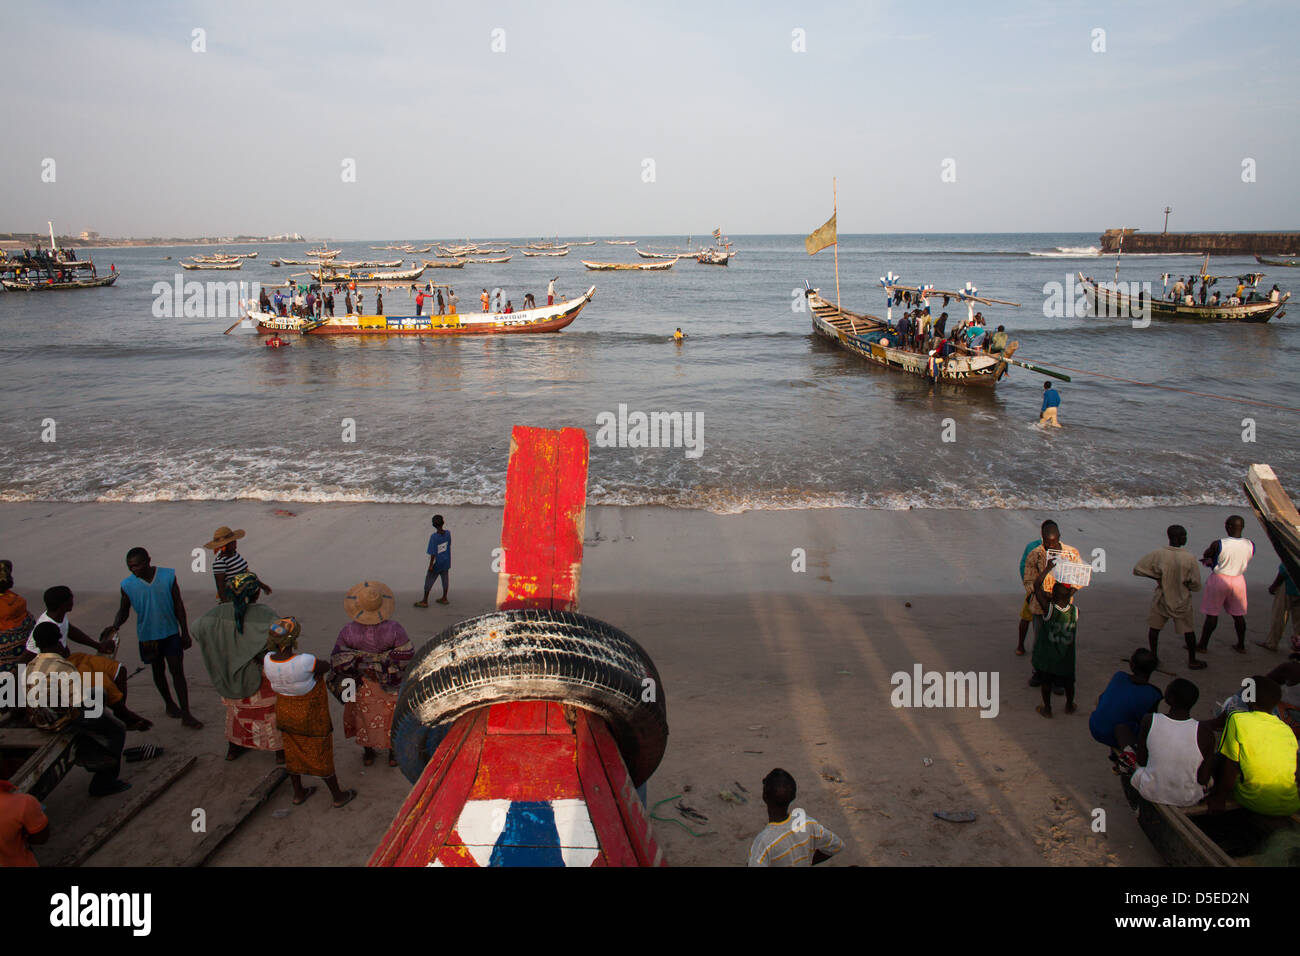 Fishing boats in Accra, Ghana. - Stock Image